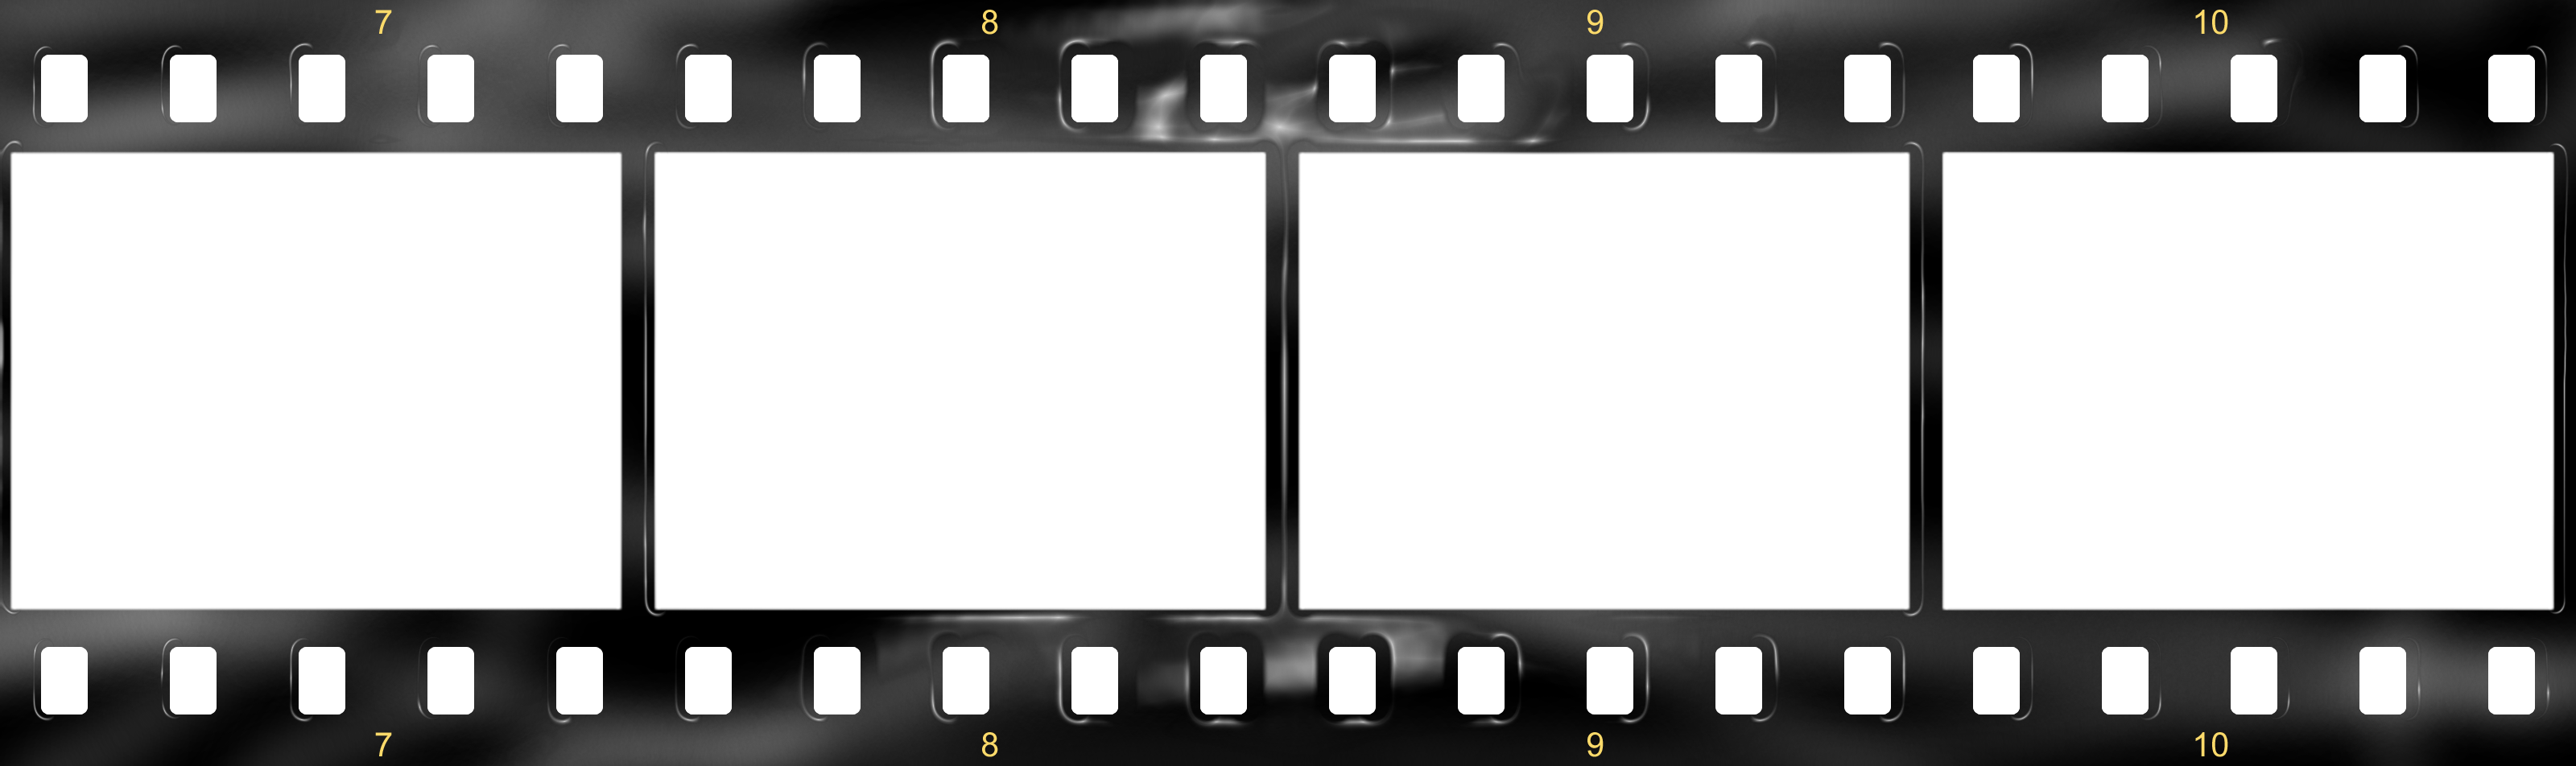 14 film psd templates images movie film template film for Film strip picture template